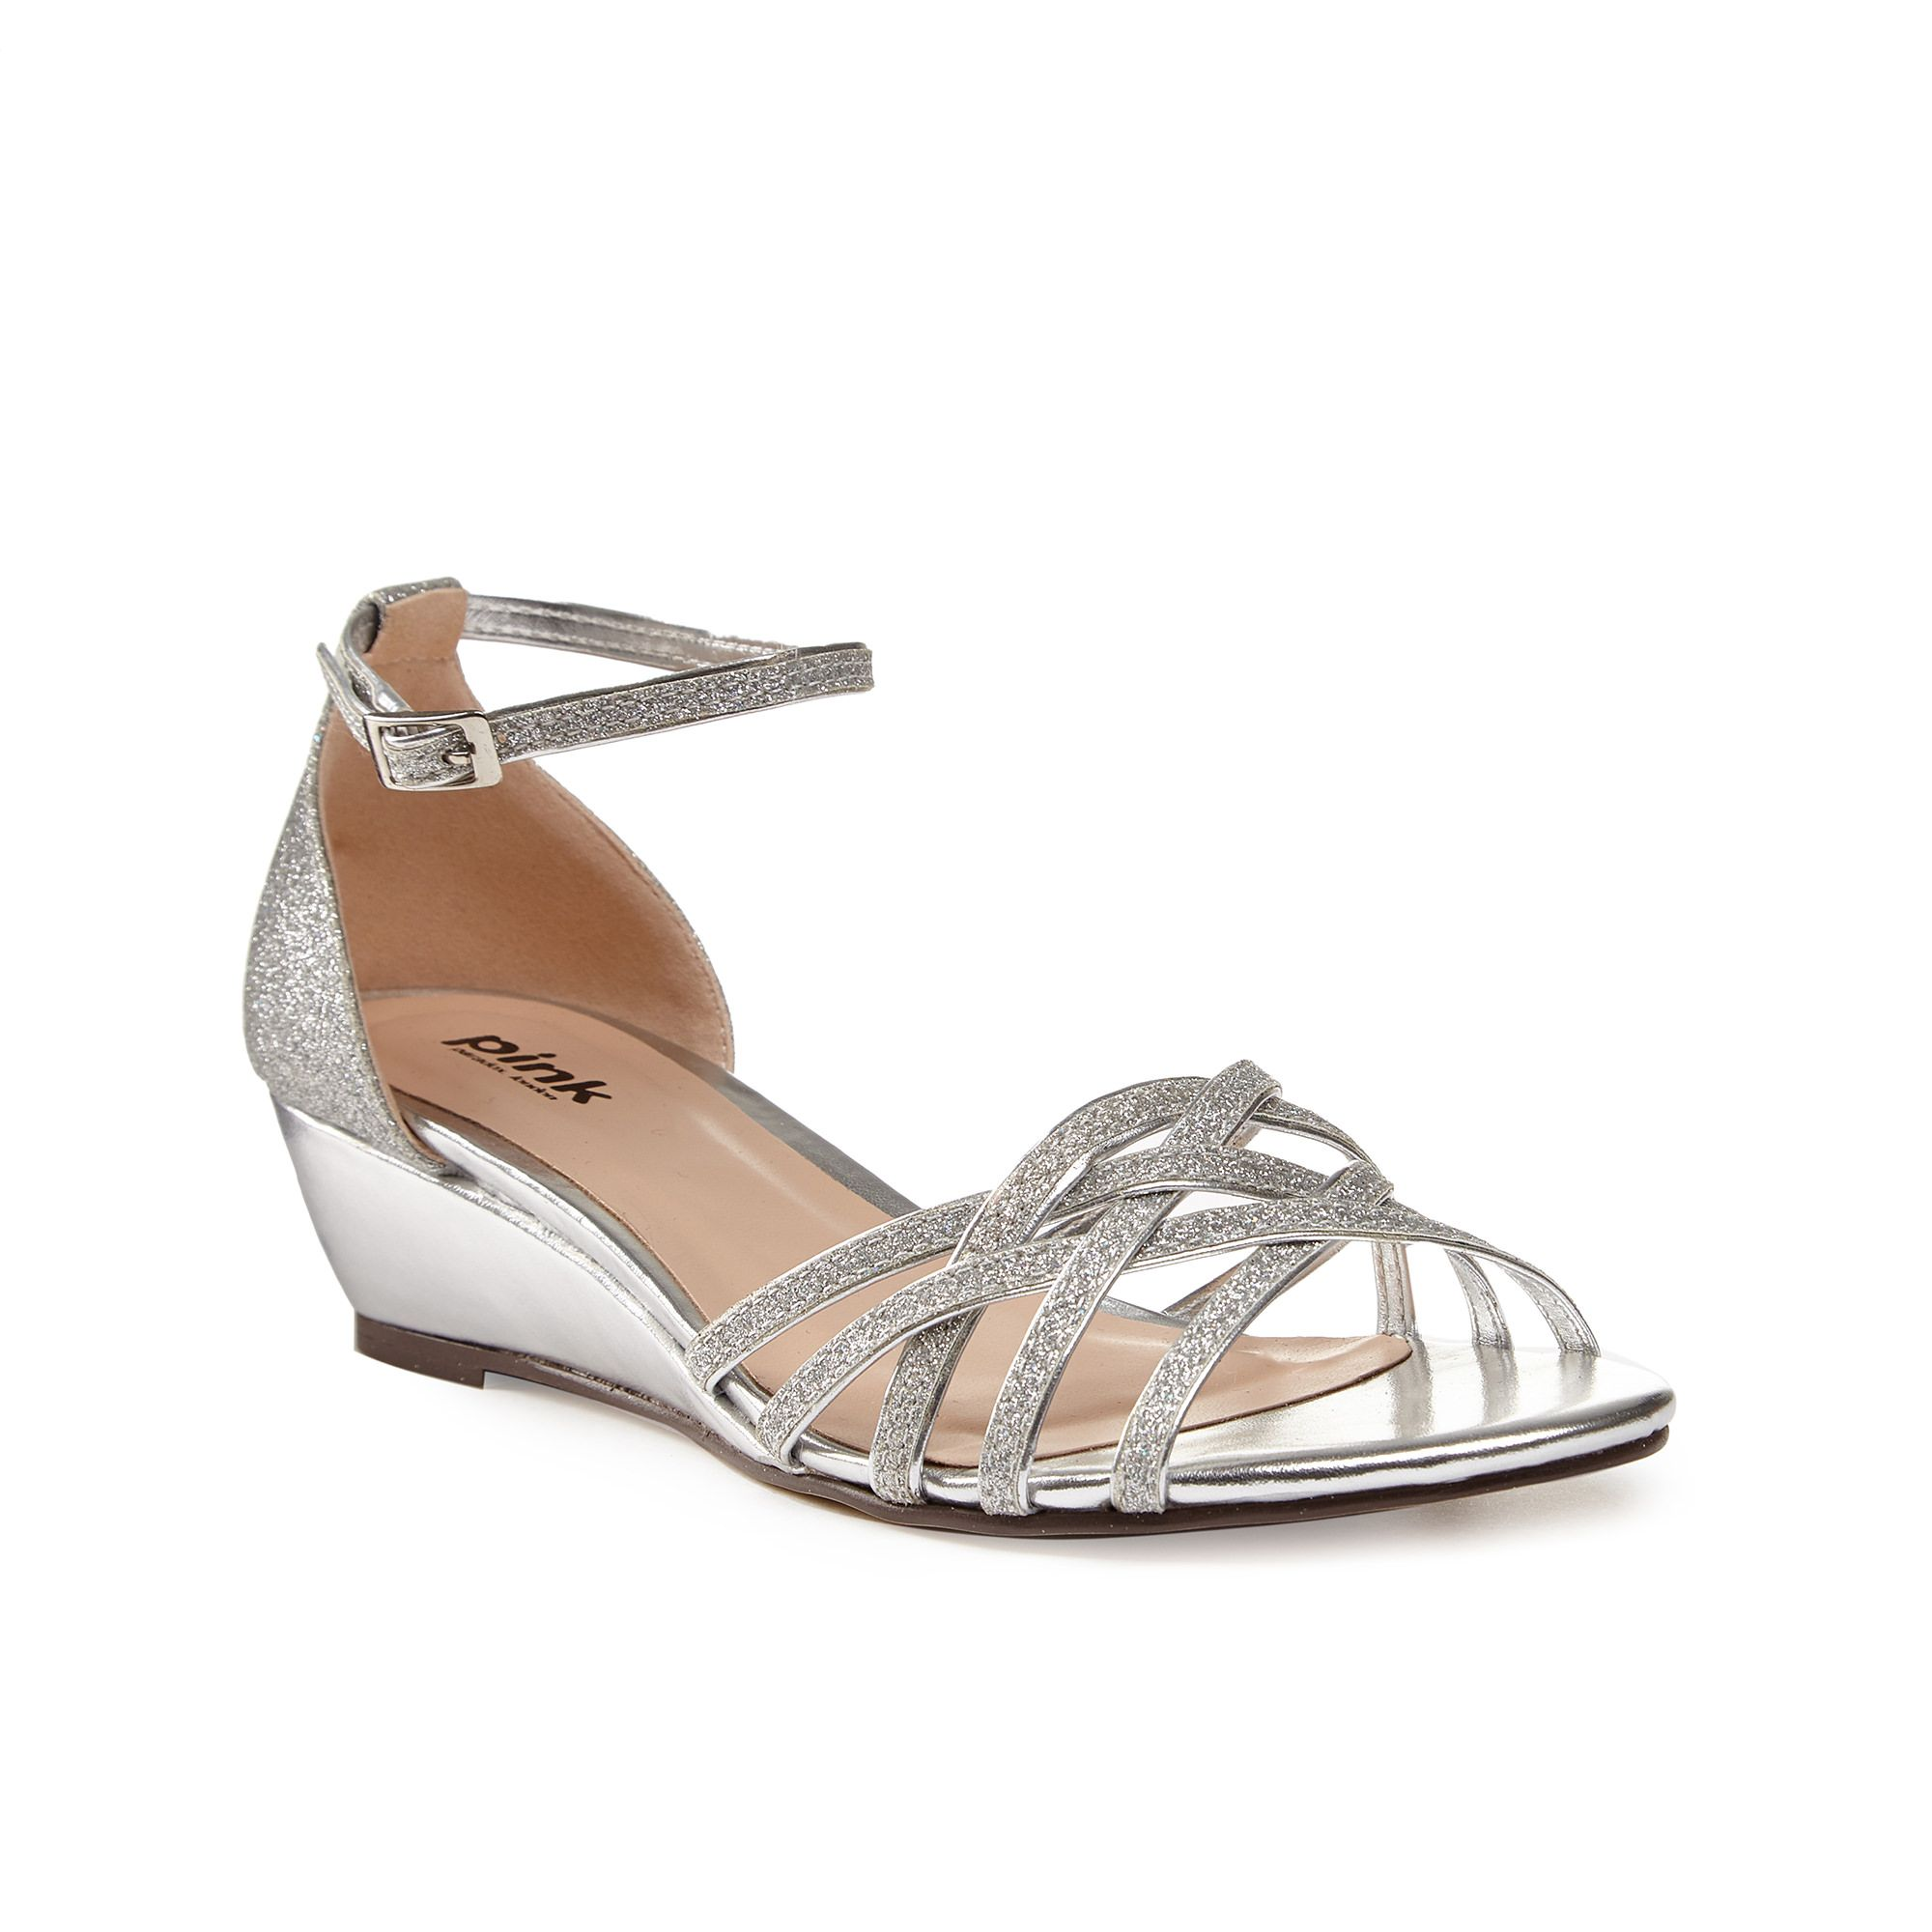 Paradox London Pink Paradox London Pink Avery strappy glitter wedge sandals, Silver